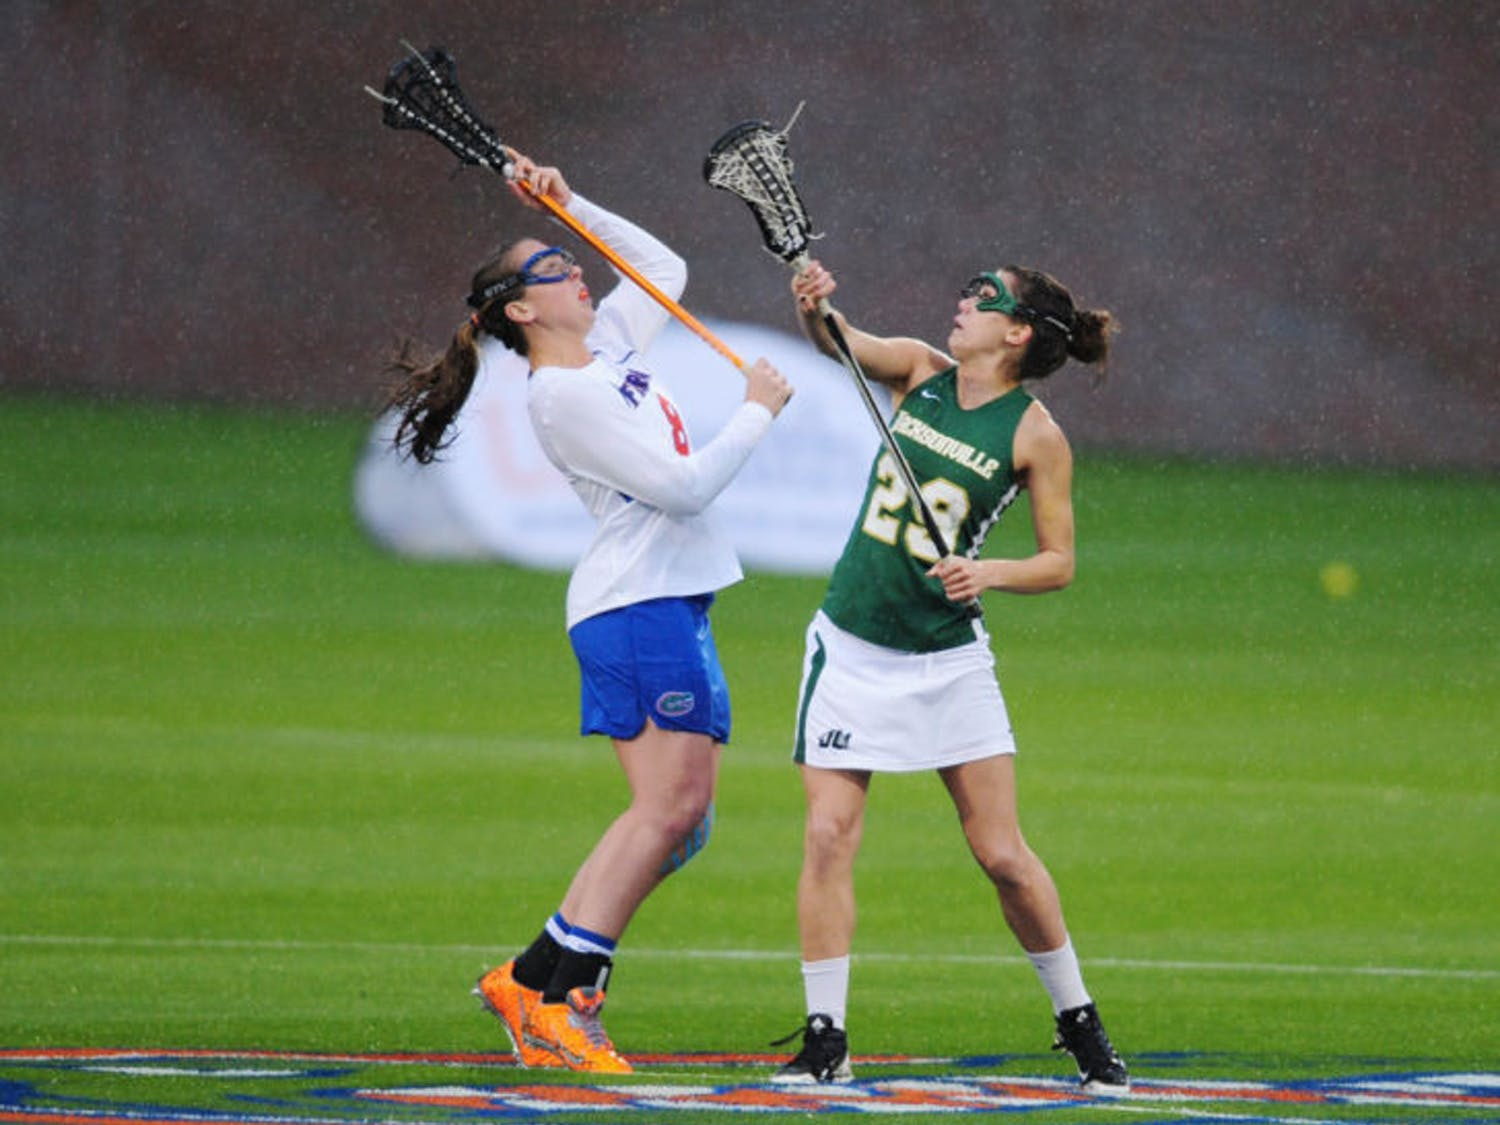 Shannon Gilroy fights for the ball during Florida's 21-5 win against Jacksonville on Feb. 12 at Donald R. Dizney Stadium. Gilroy leads the Gators with 35 goals this season.